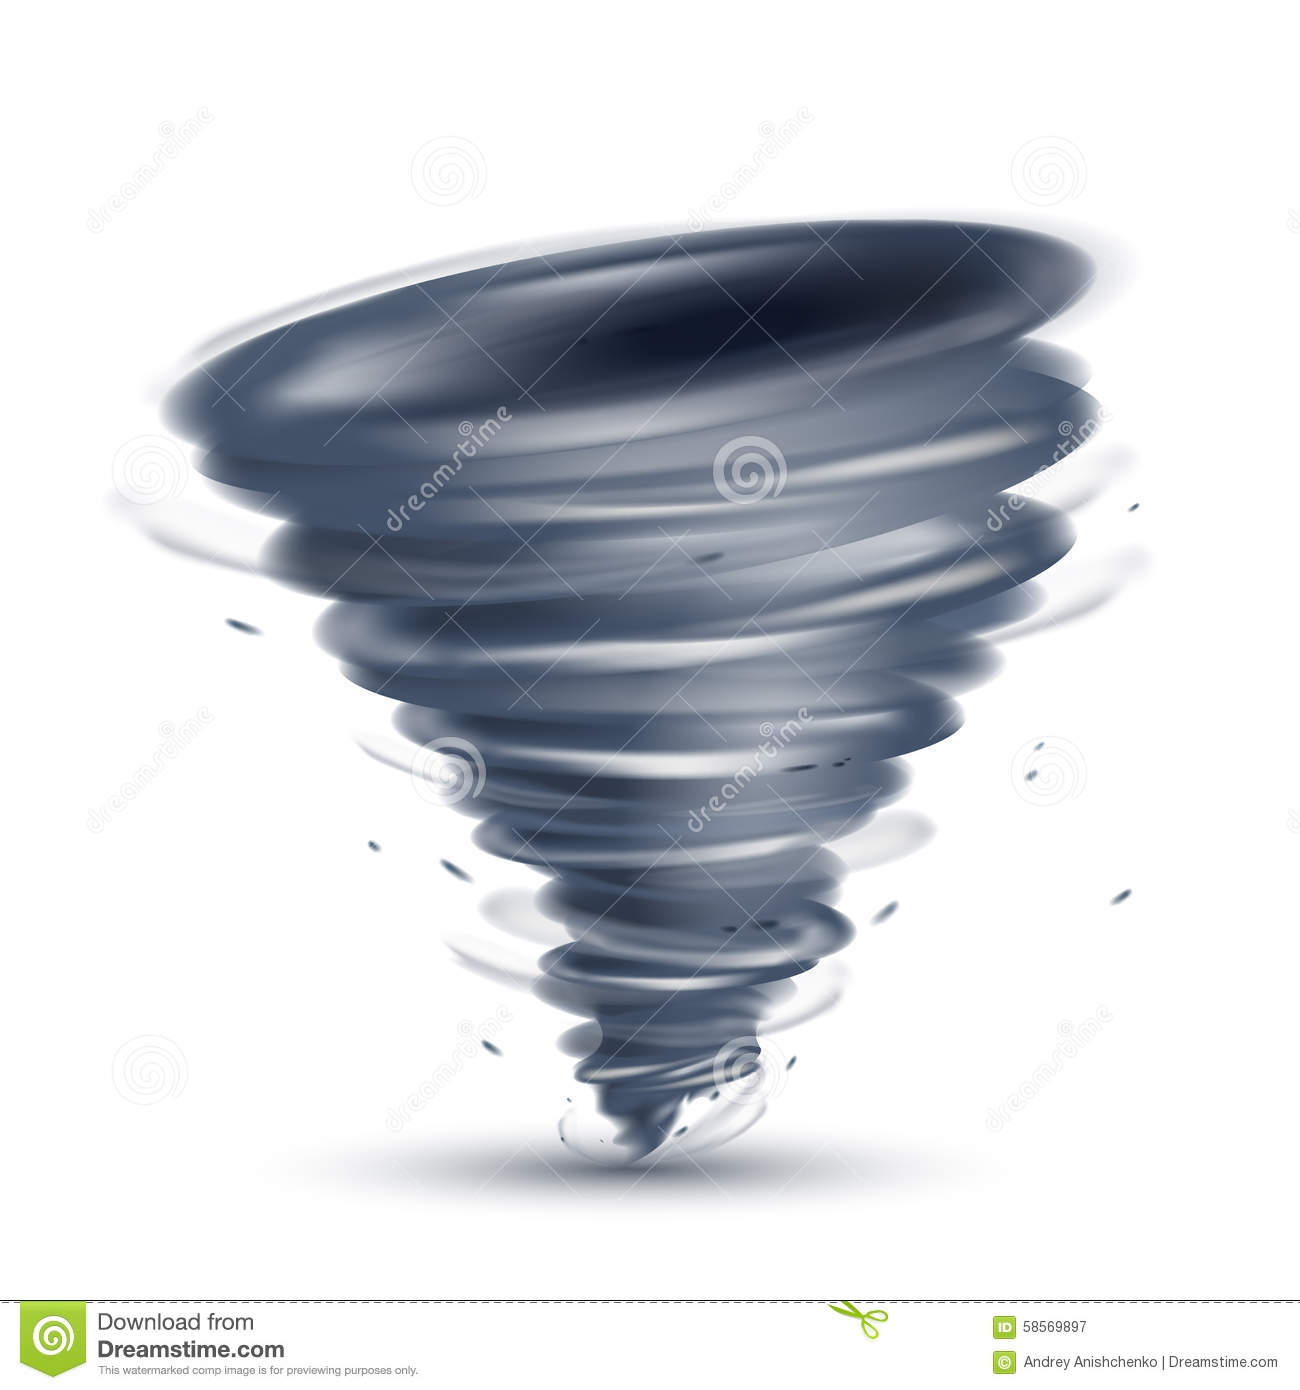 free animated tornado clipart - photo #49